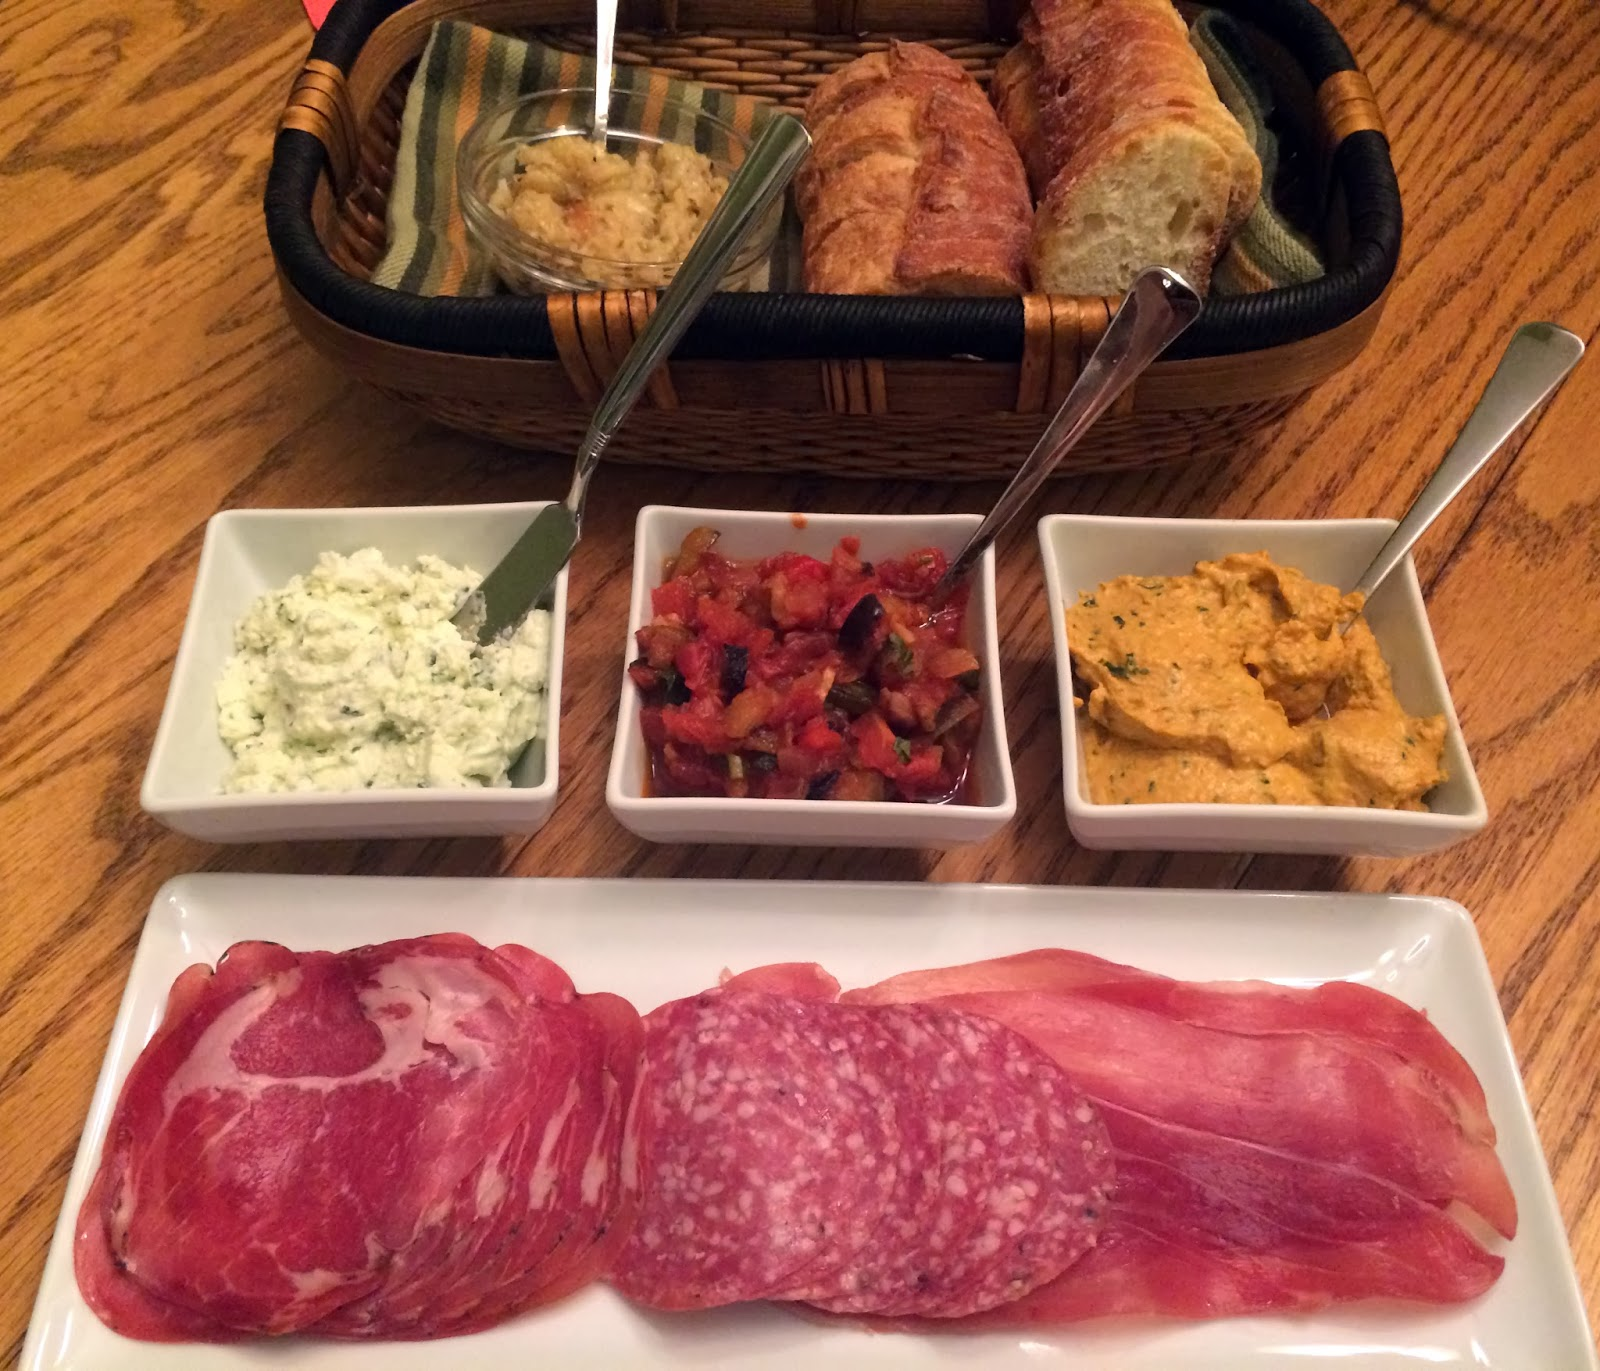 appetizer platter with various spreads and cured meats - with baguette